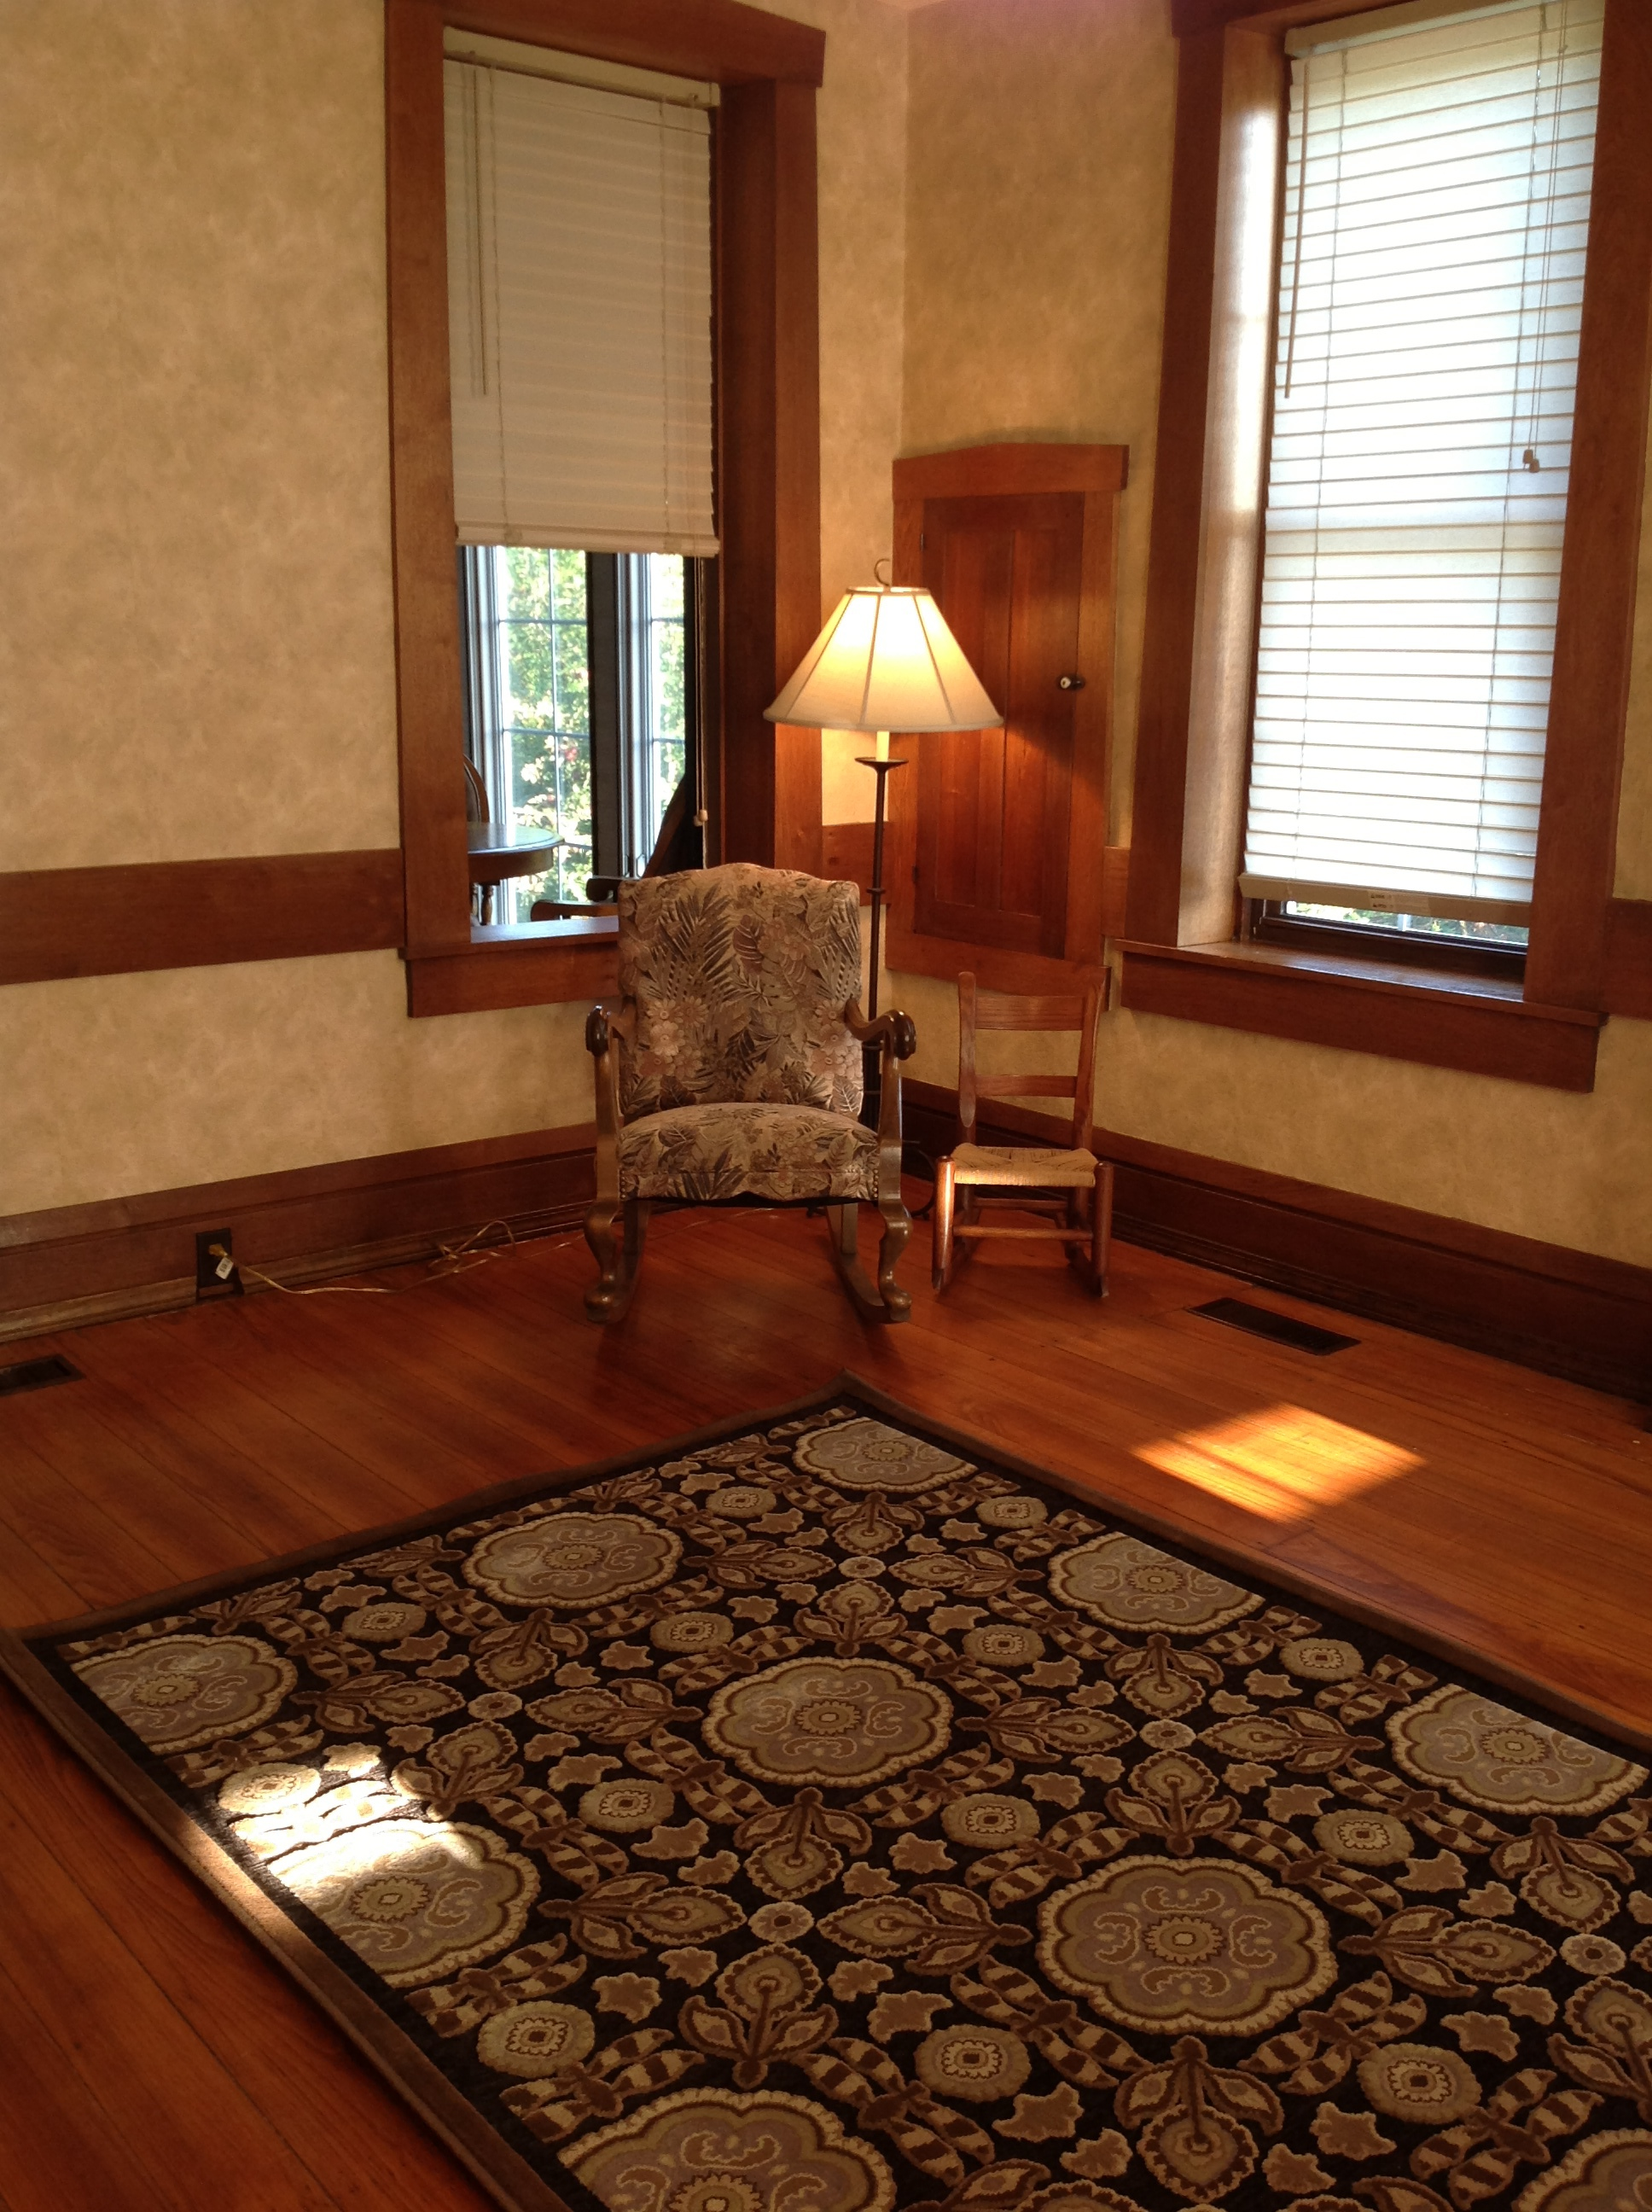 Parlor View 2